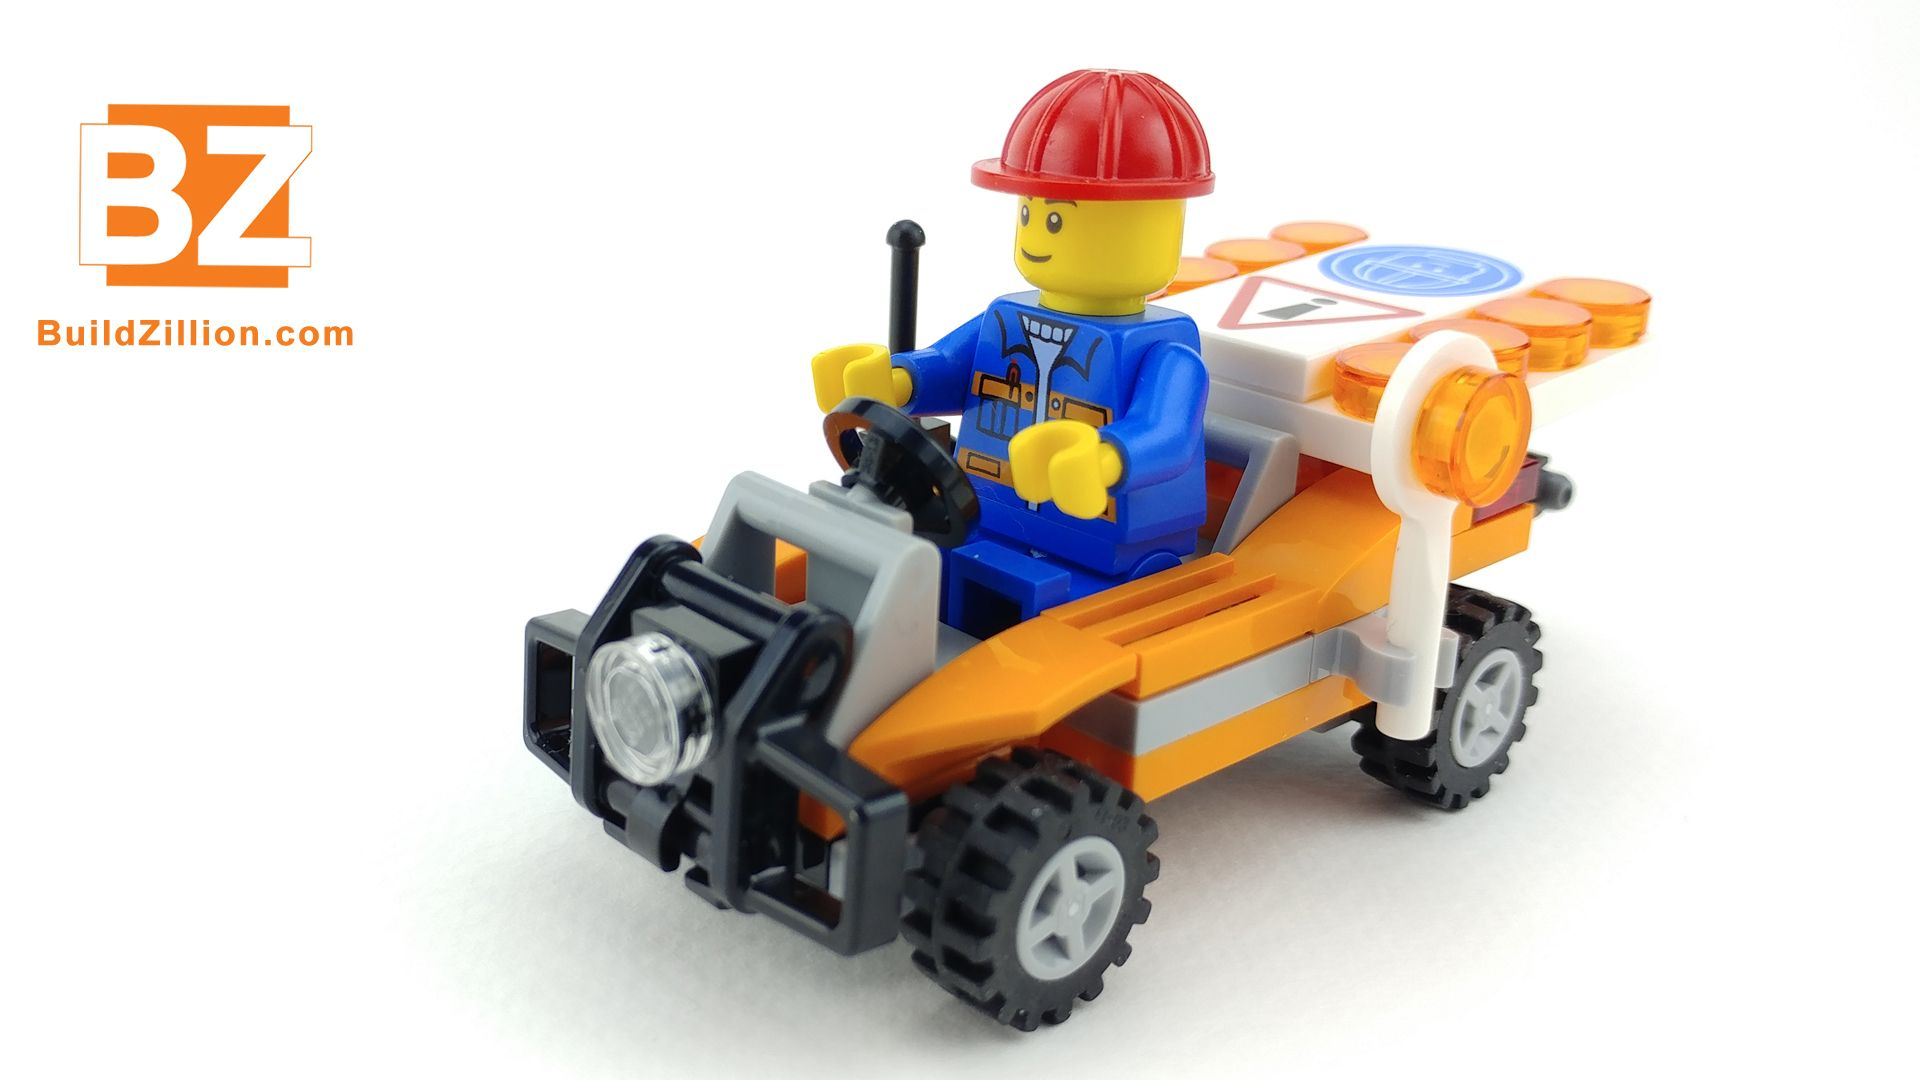 LEGO time lapse speed build animation of Lego city road worker, set